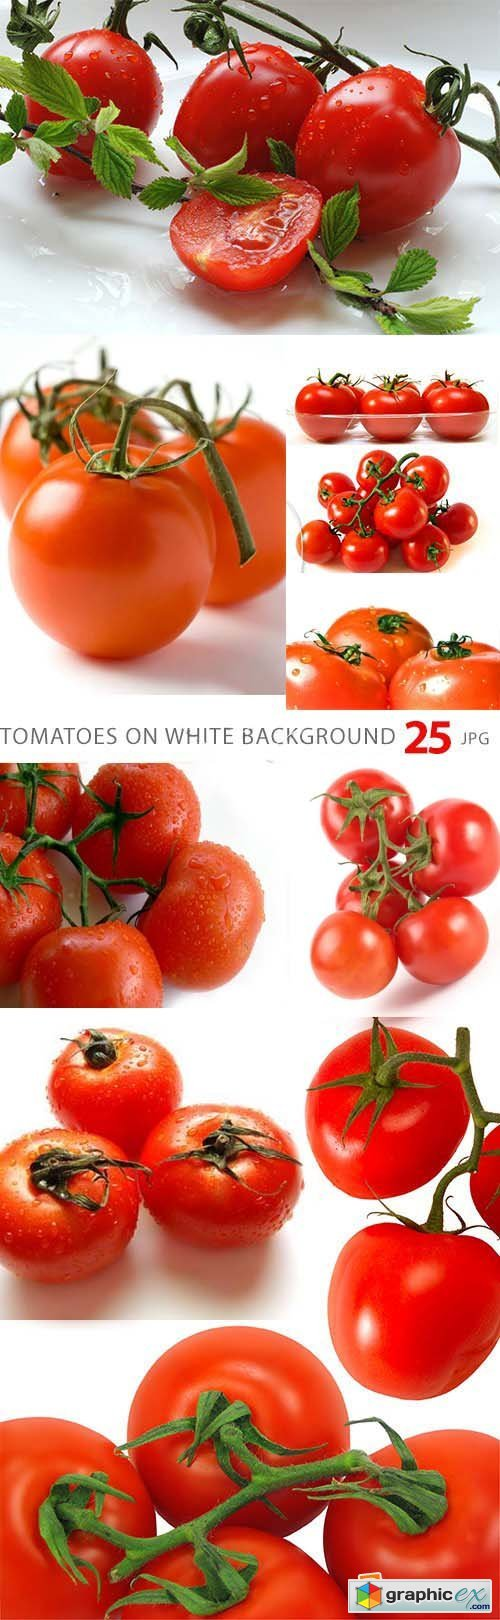 Tomatoes on White Background 25xJPG